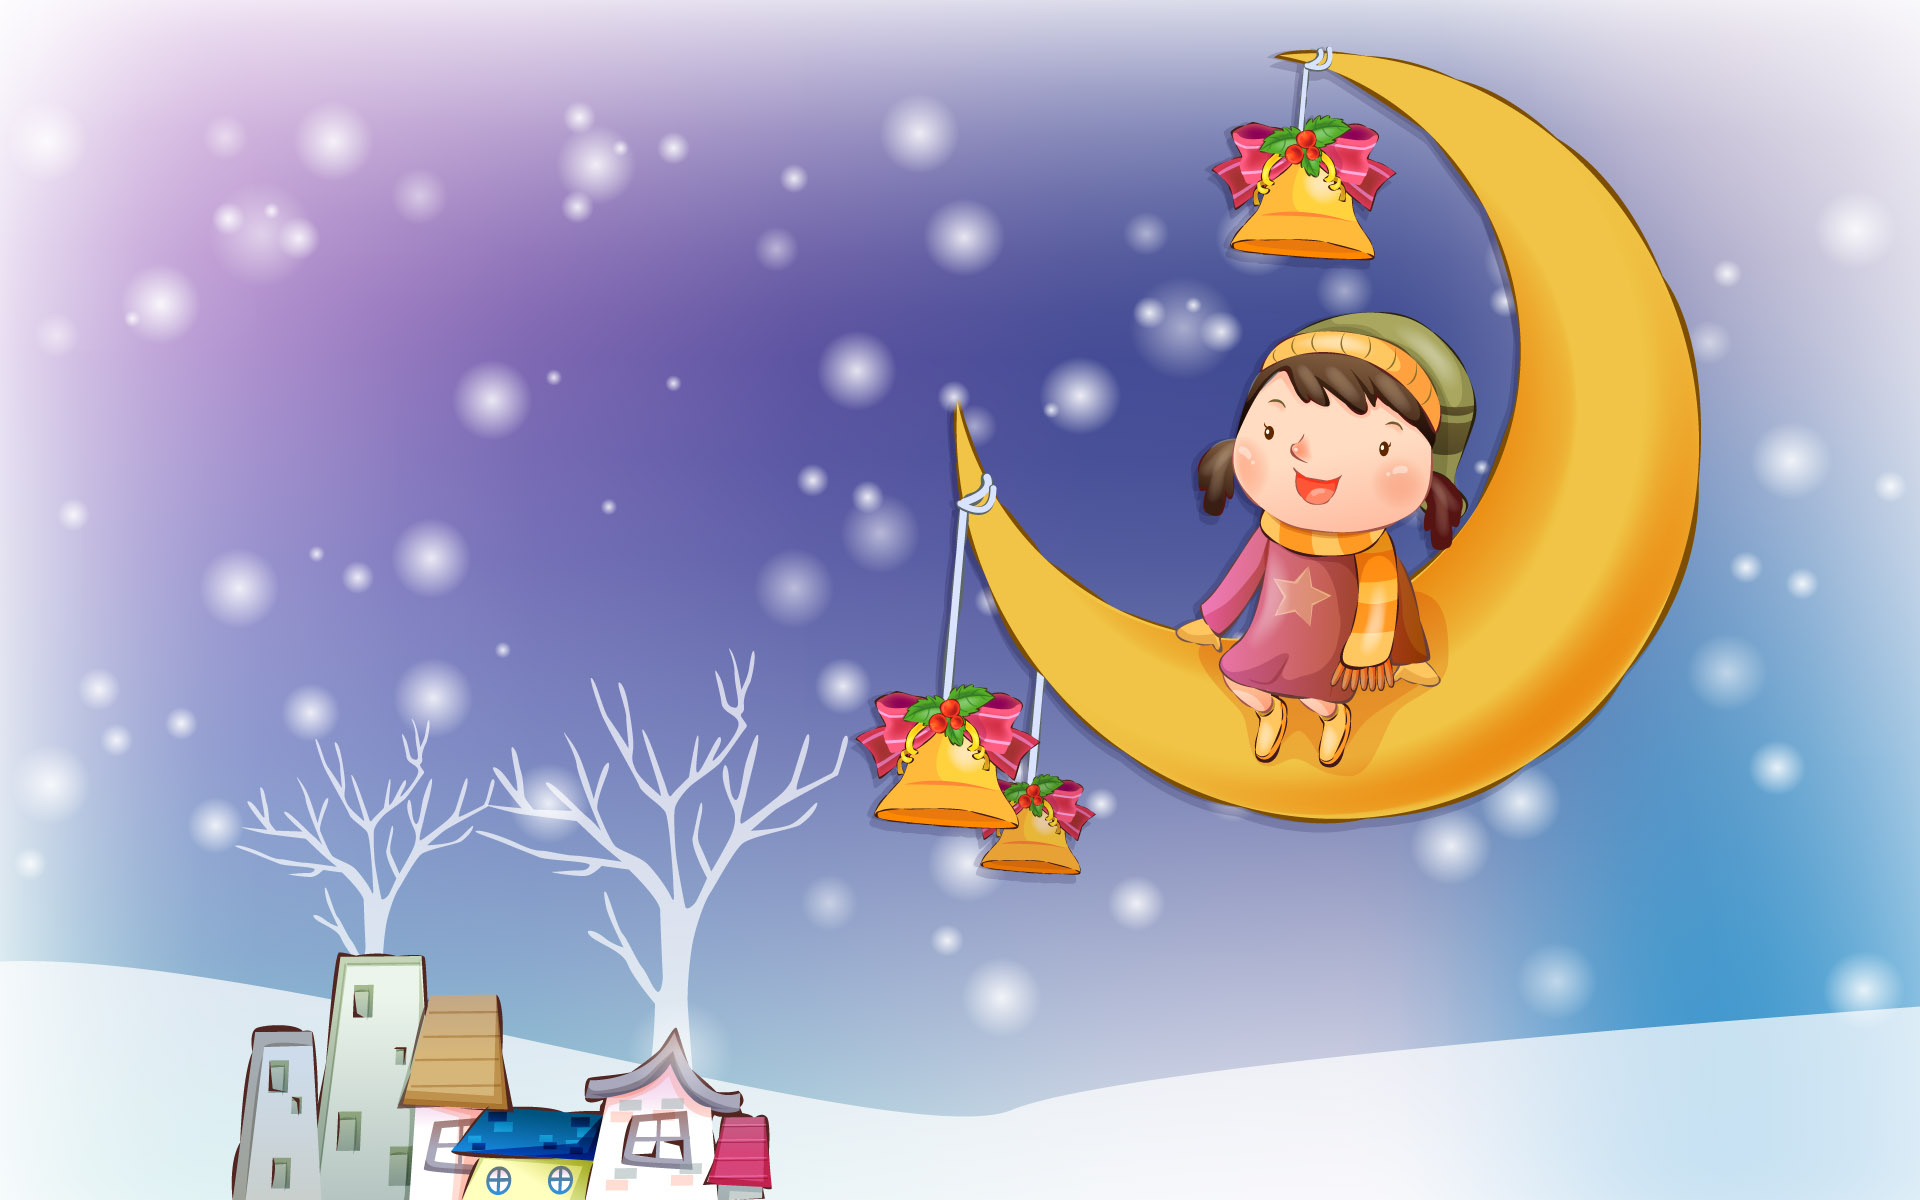 Happy childhood Christmas illustration articles 13084